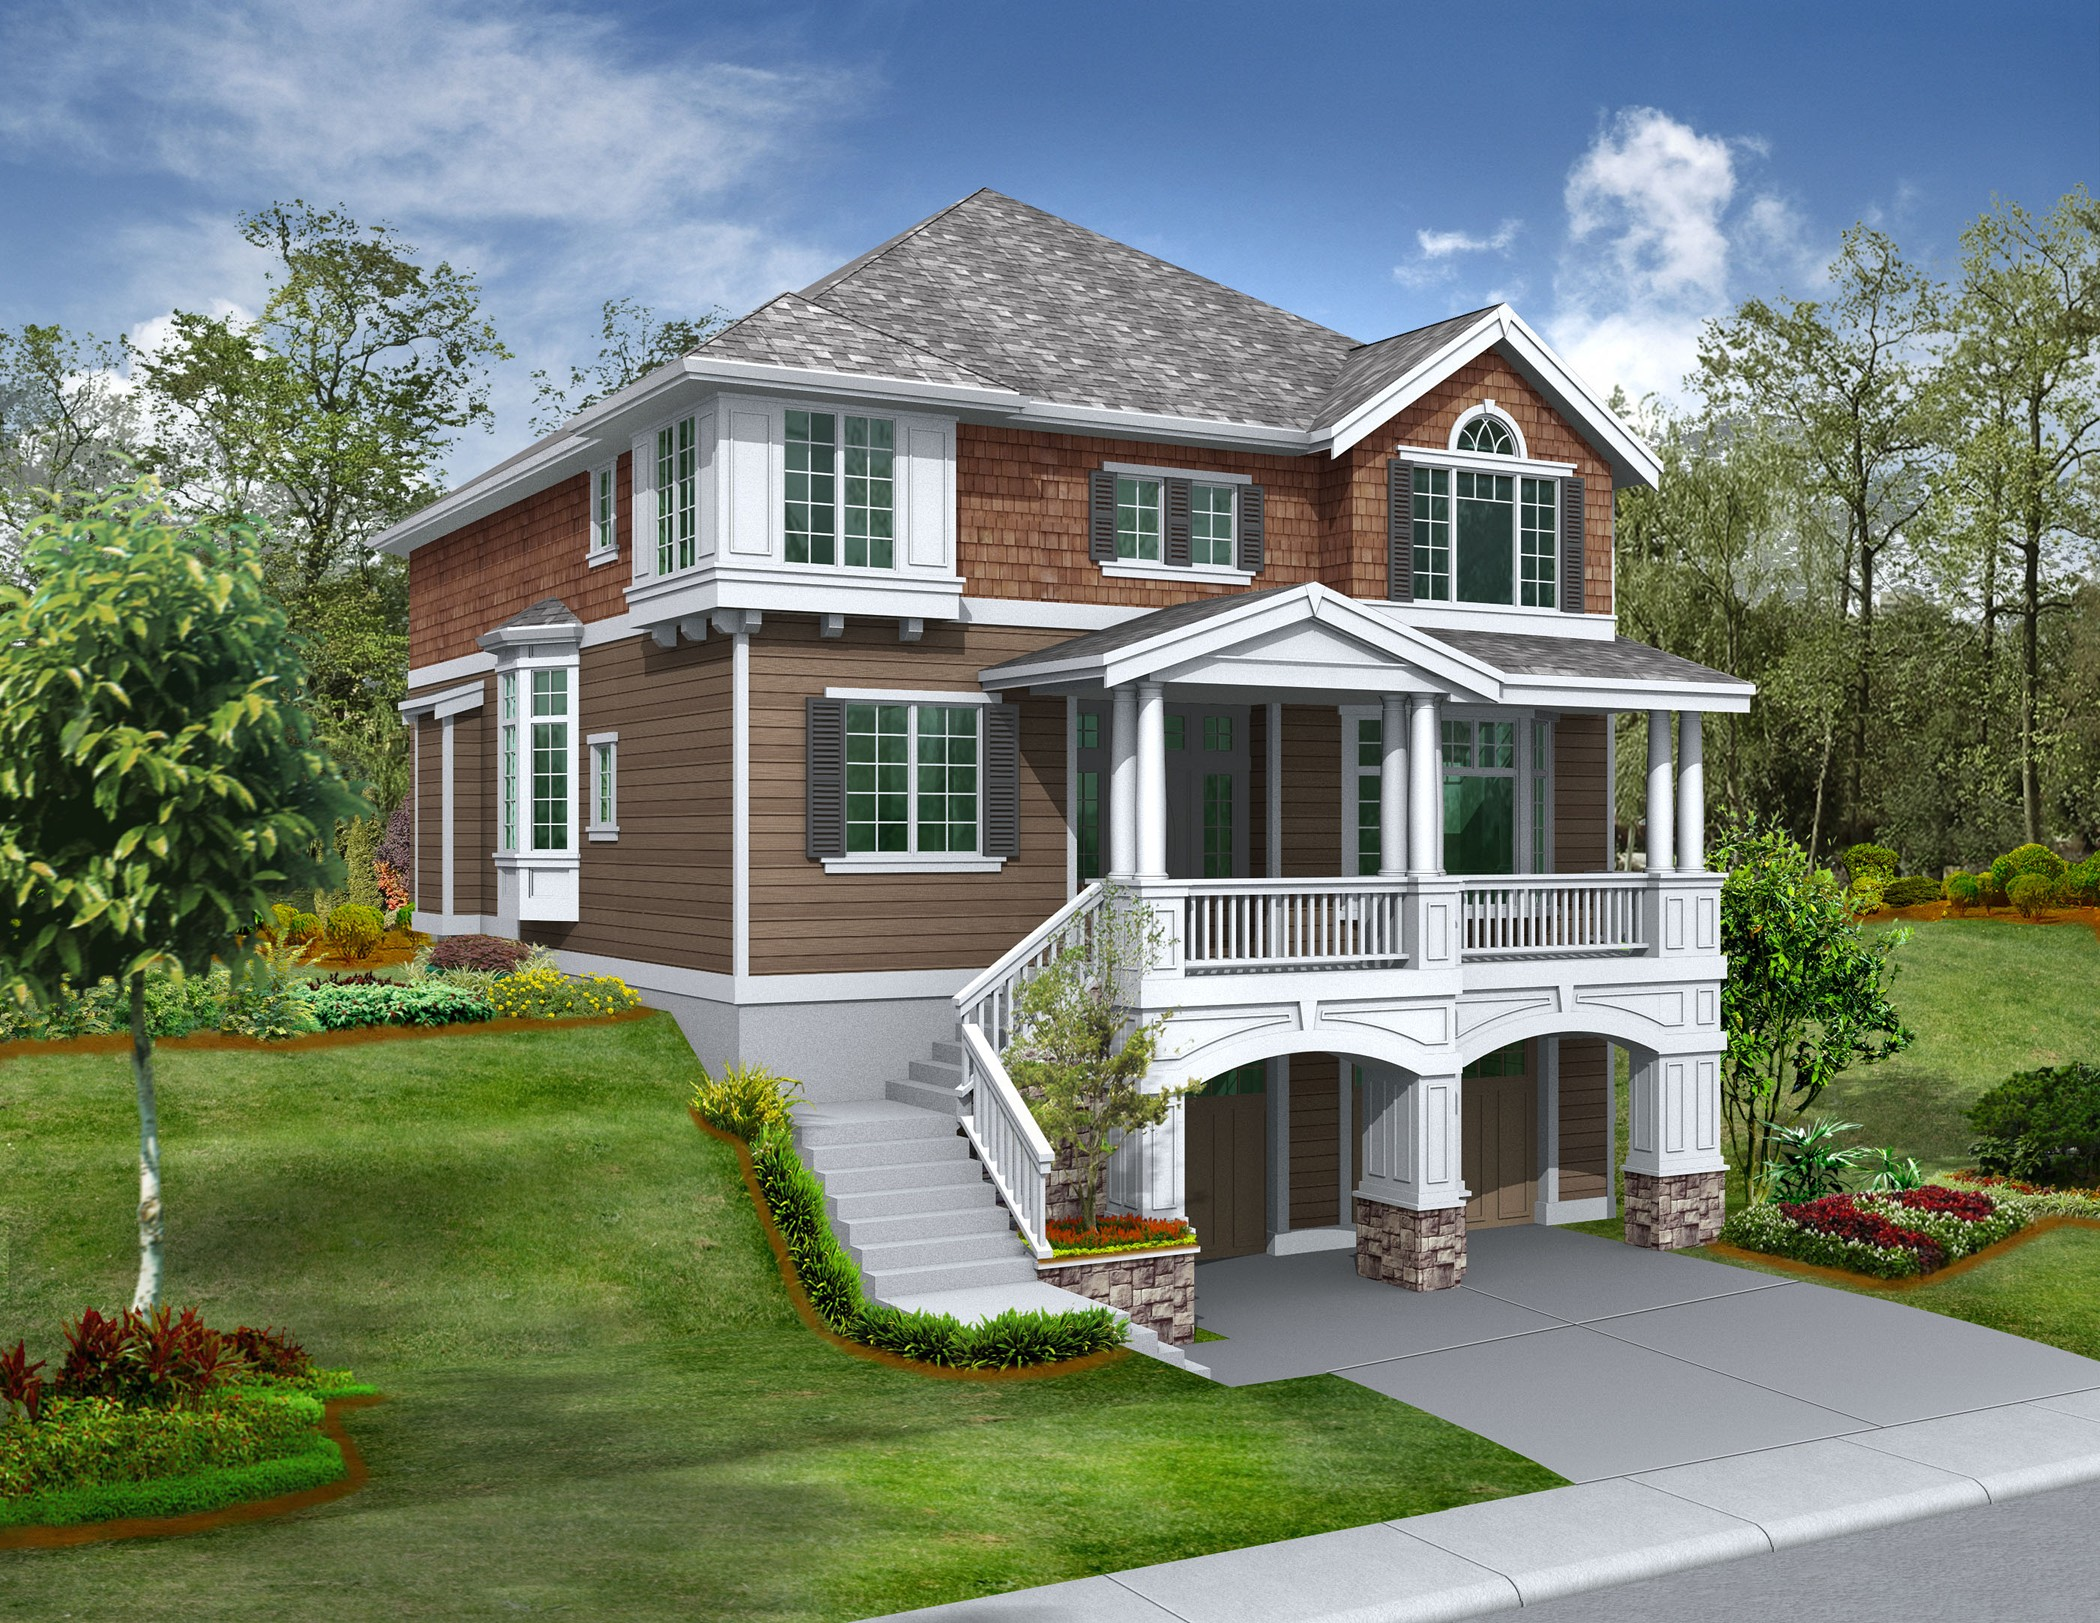 Sloped Lot House Plans For The Front Sloping Lot  2357Jd  Architectural Designs  House